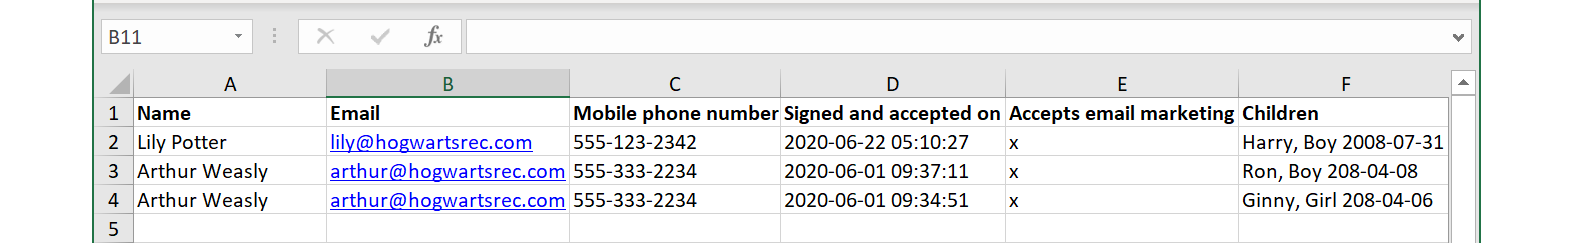 Exporting signed waivers in Excel with Activity Messenger